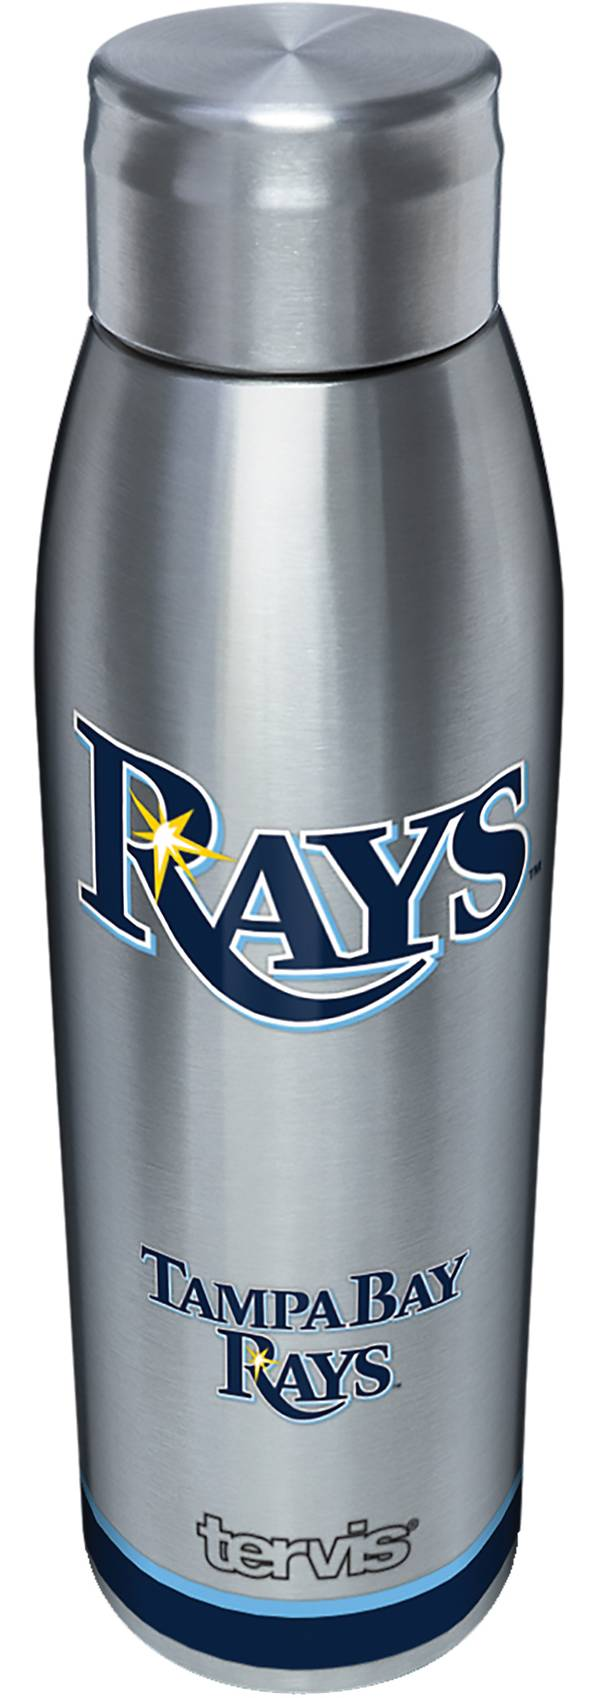 Tervis Tampa Bay Rays 17oz. Water Bottle product image